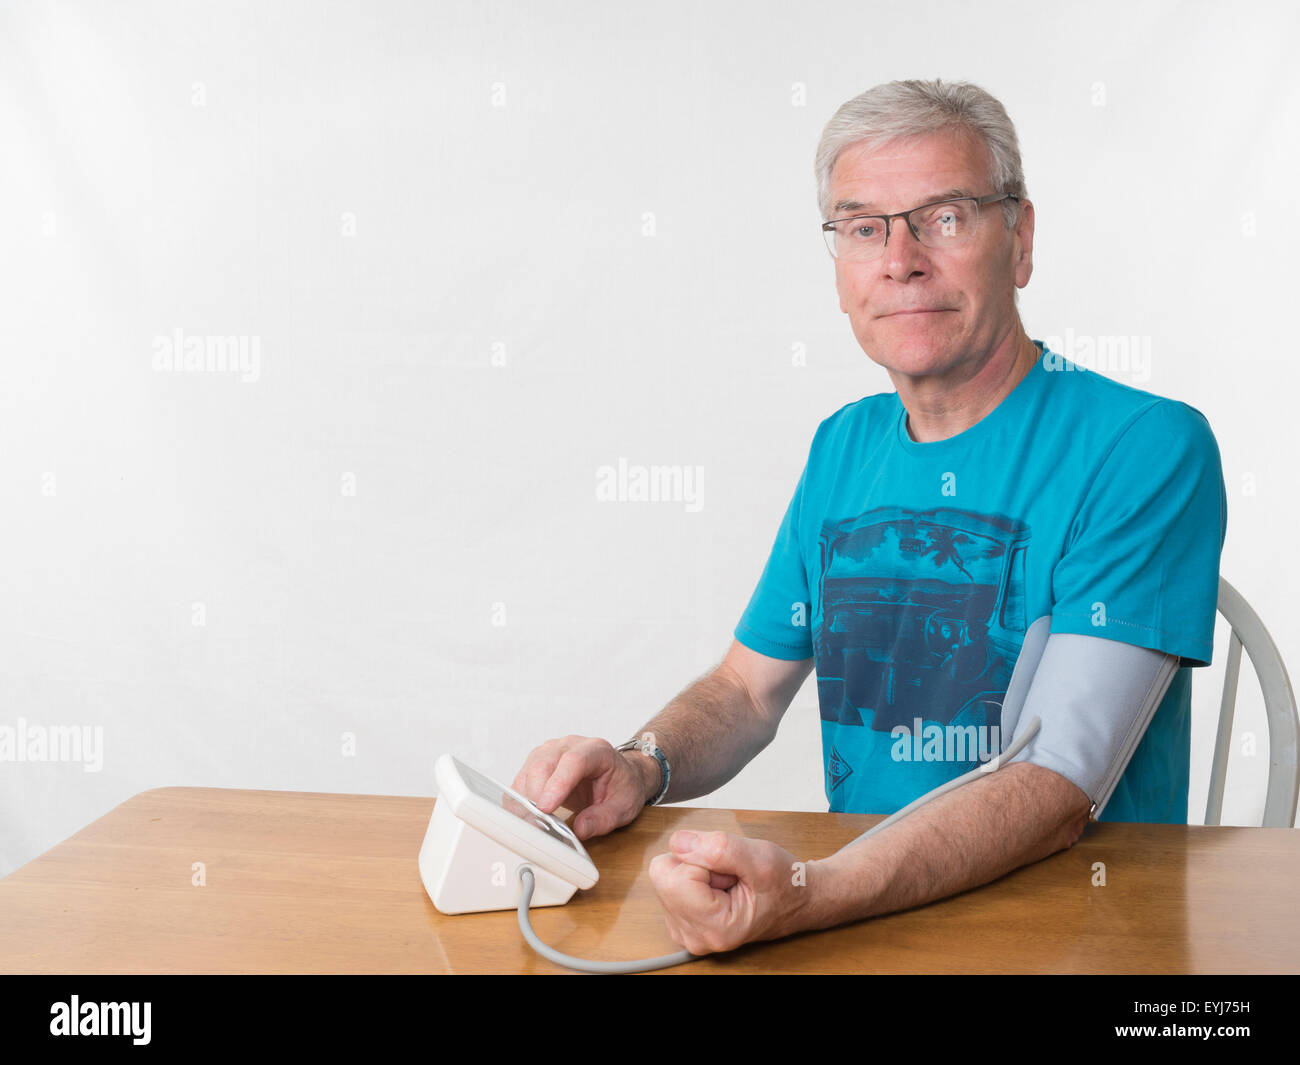 Middle aged man taking blood pressure readings white background looking towards camera - Stock Image